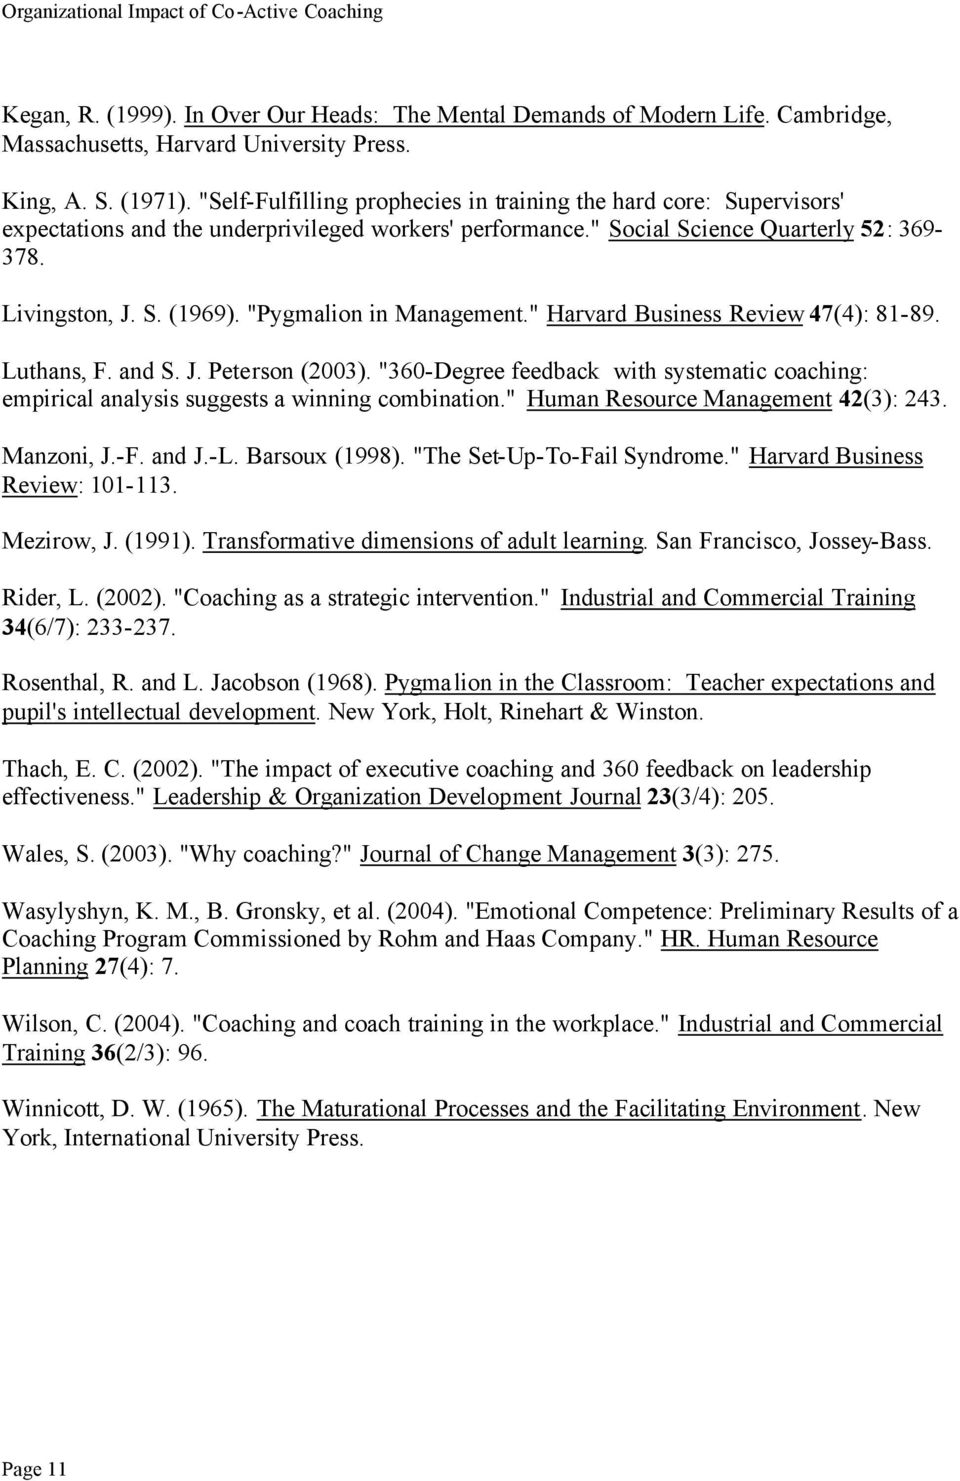 """Pygmalion in Management."" Harvard Business Review 47(4): 81-89. Luthans, F. and S. J. Peterson (2003)."